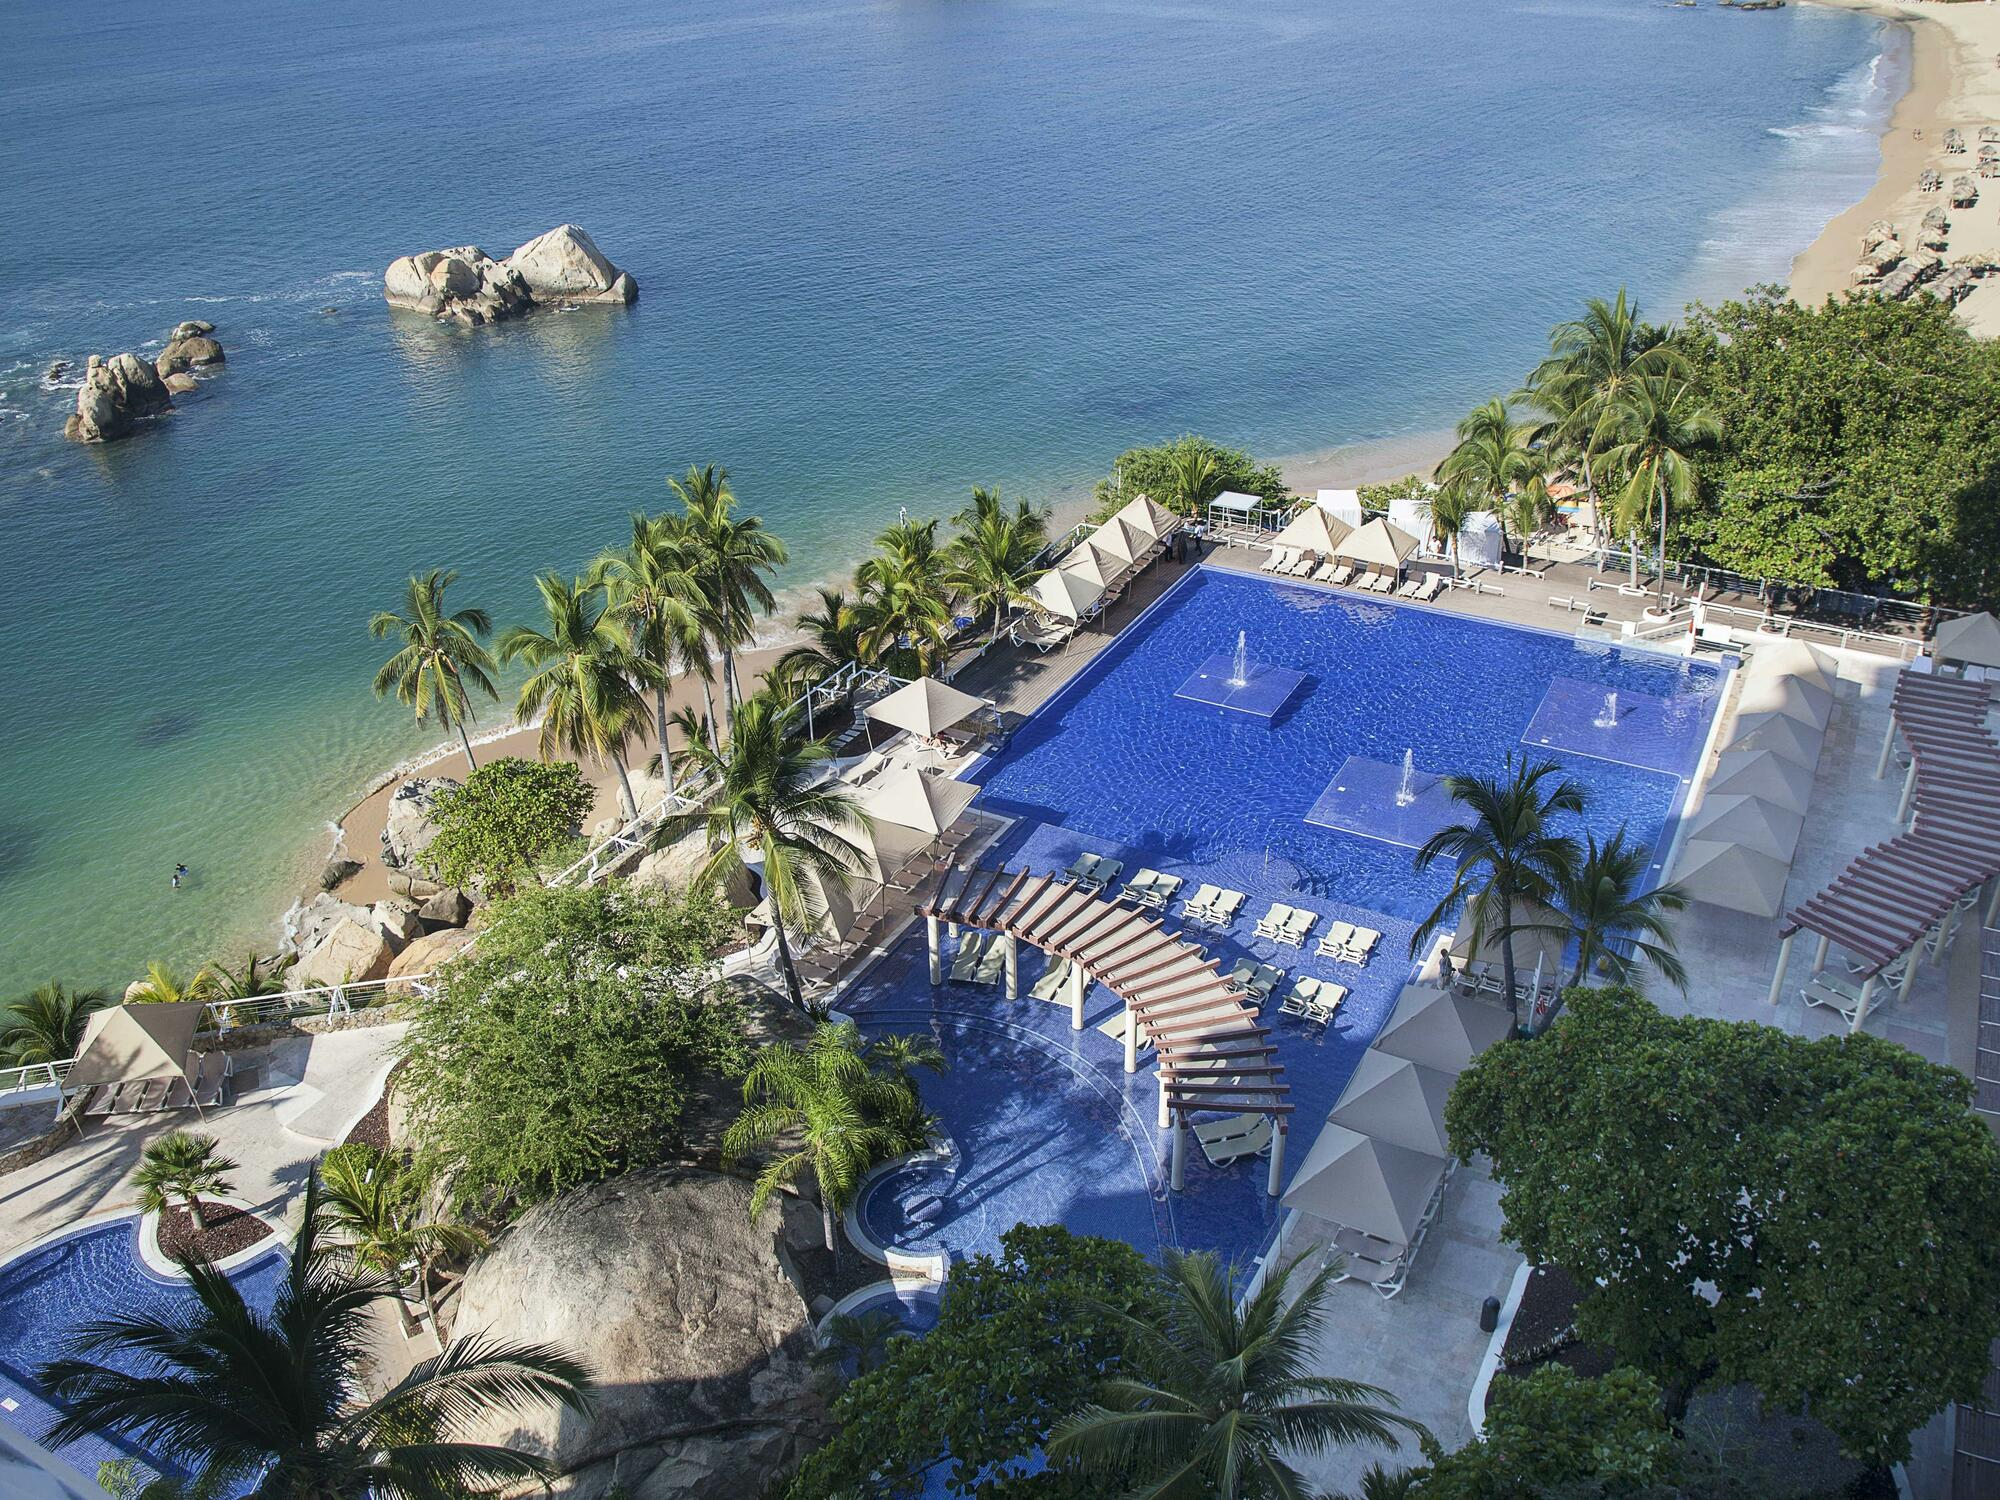 Aerial view of a hotel with pool in the Acapulco